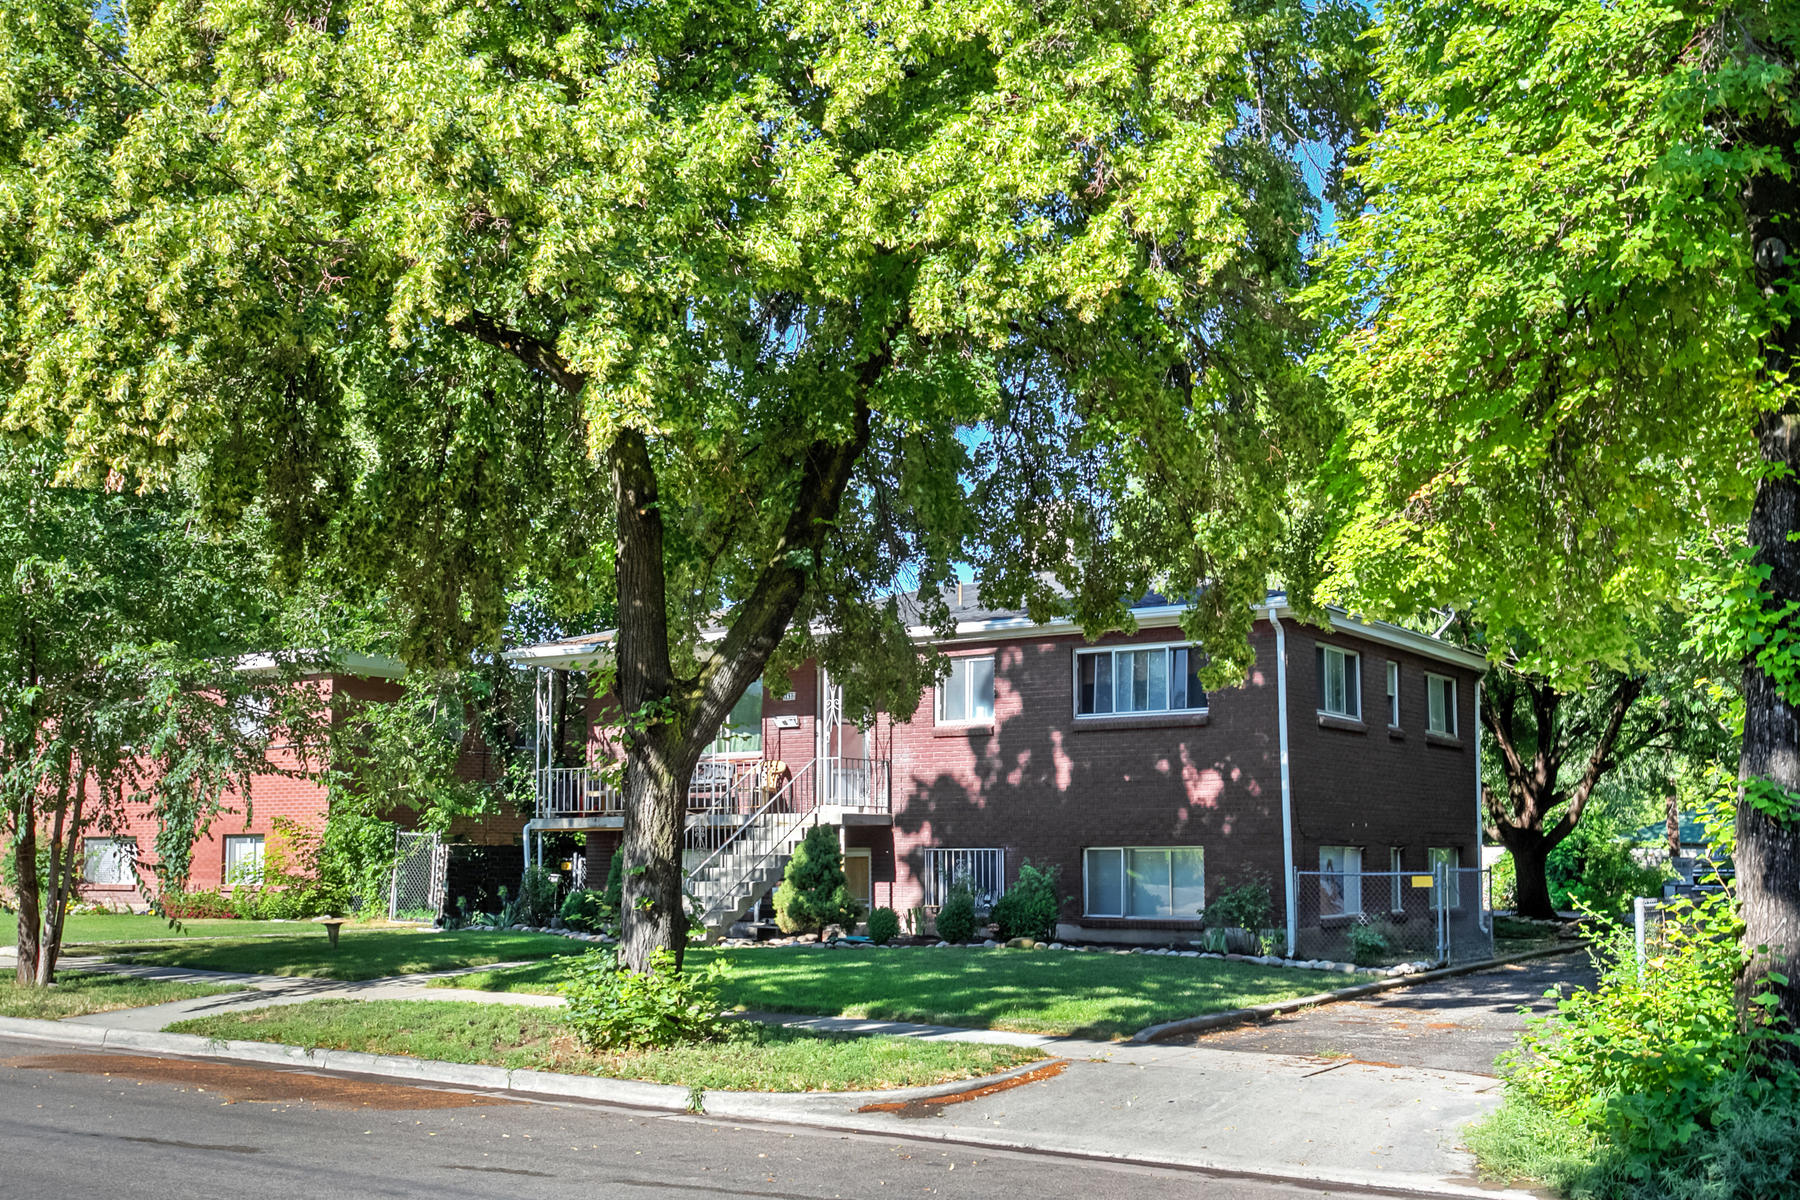 Duplex for Sale at Rare Sugar House Up and Down Duplex 1630 South 1000 East Salt Lake City, Utah, 84105 United States